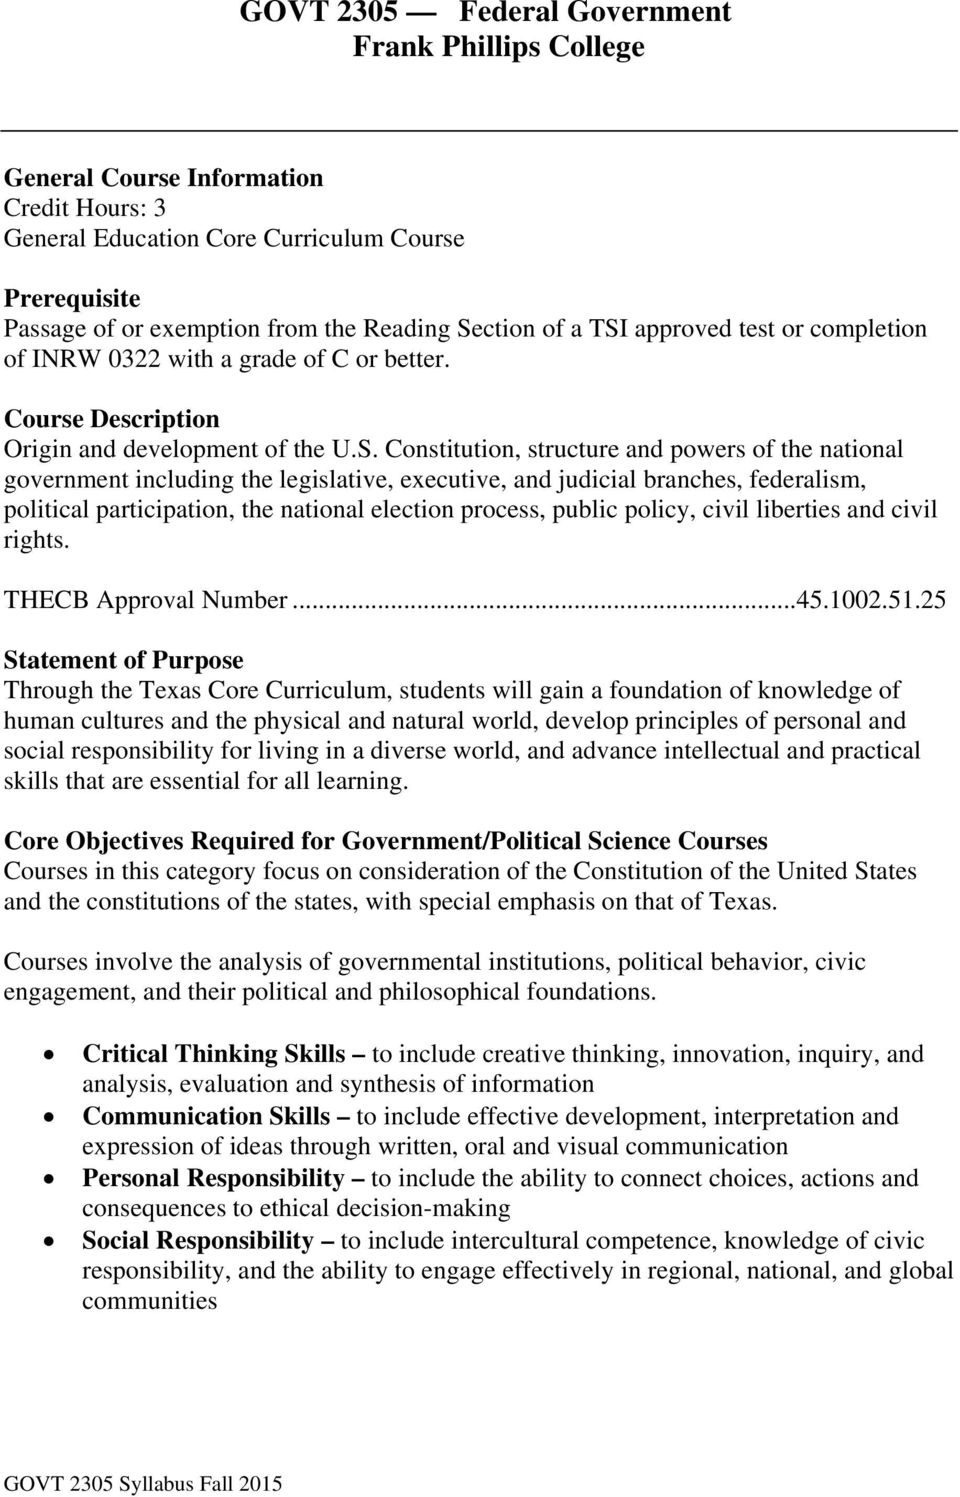 approved test or completion of INRW 0322 with a grade of C or better. Course Description Origin and development of the U.S.